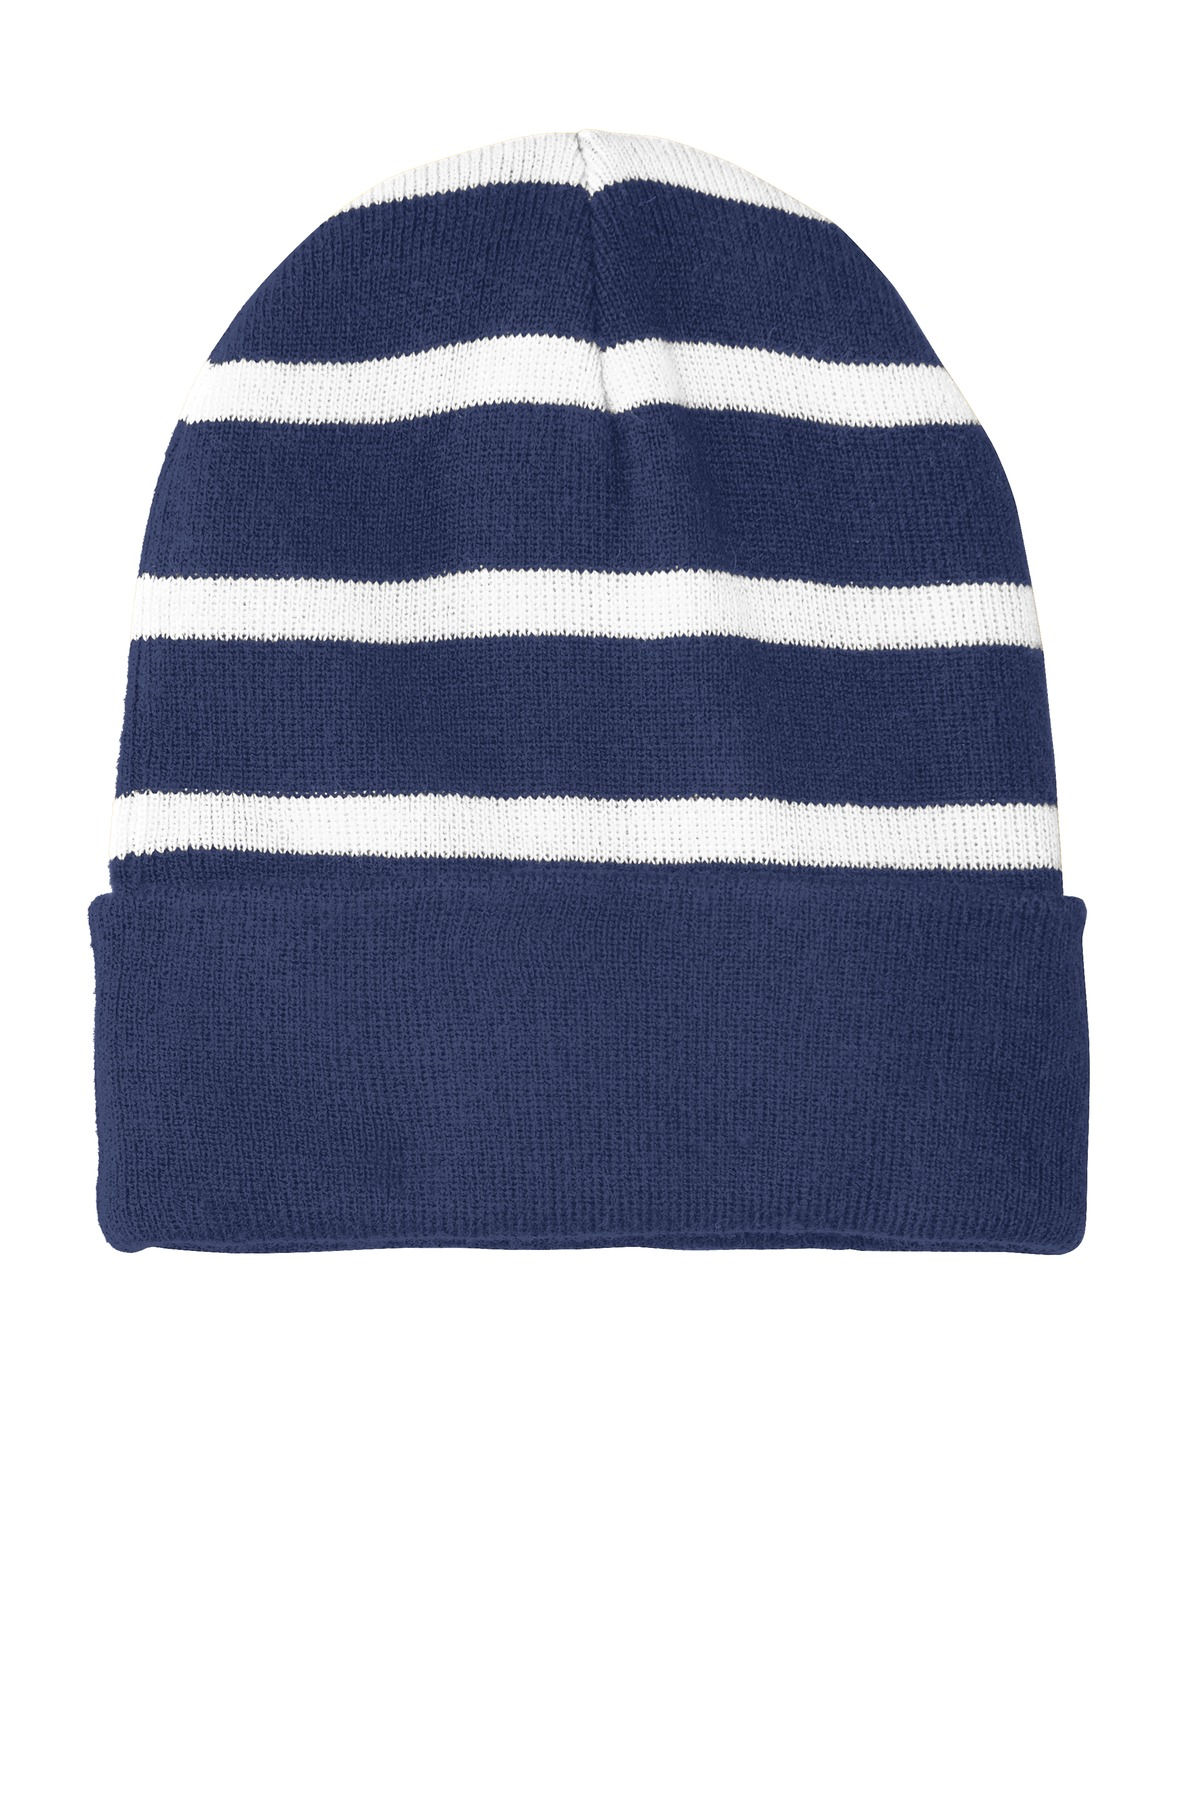 Sport-Tek ®  Striped Beanie with Solid Band. STC31 - True Navy/ White